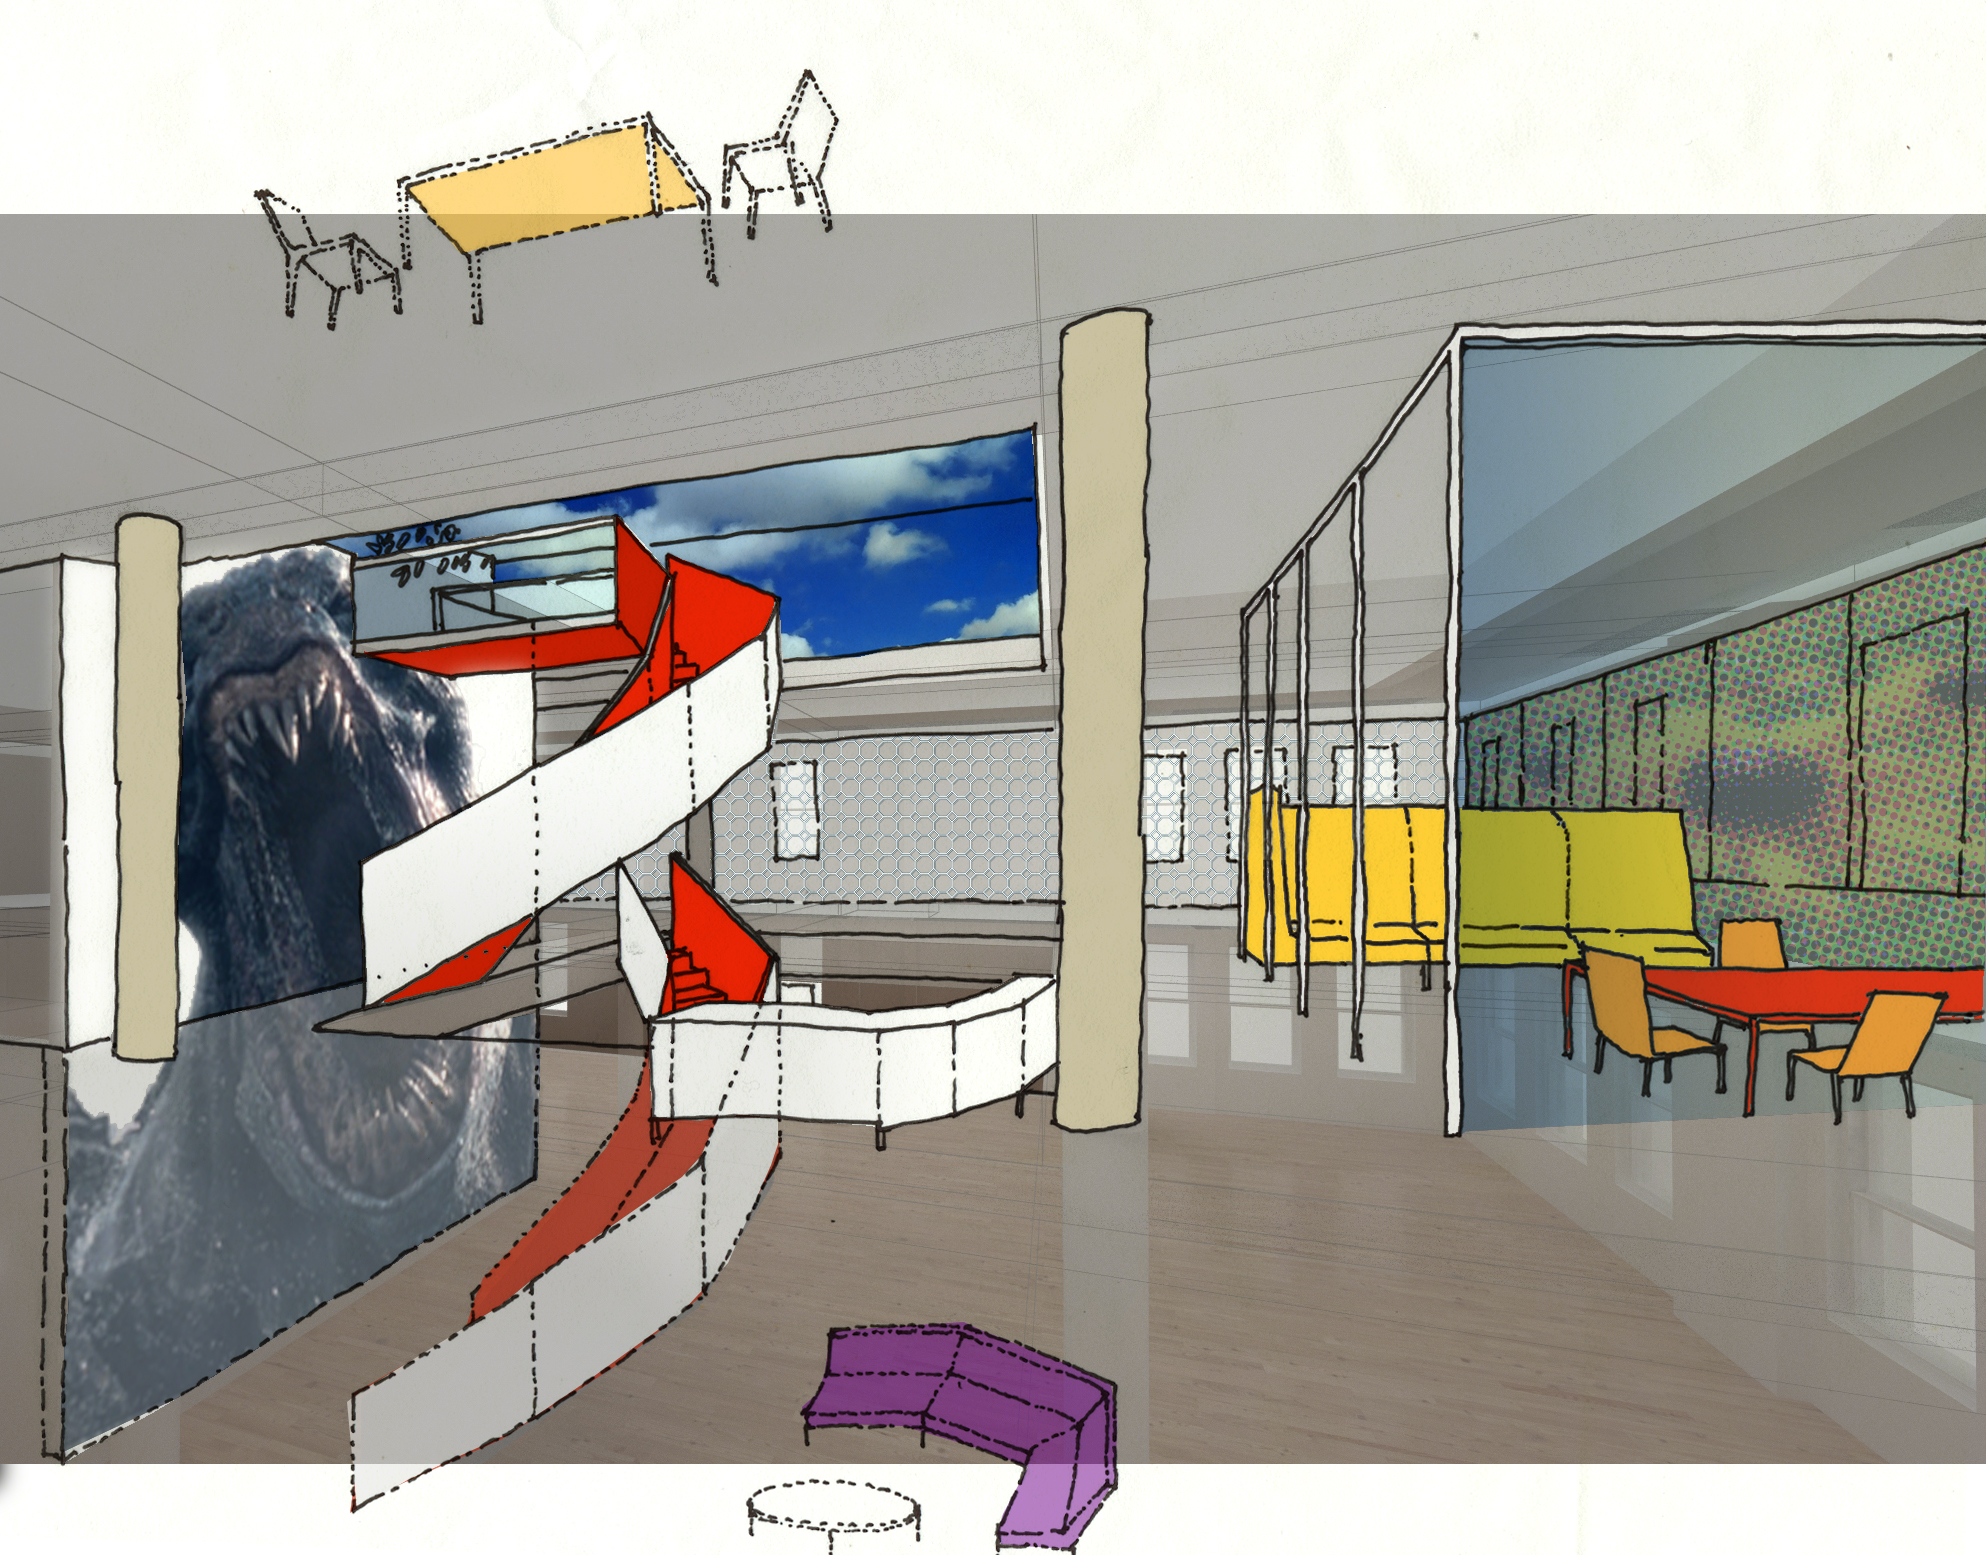 ACHA, FX Studio, Central Staircase, Concept Sketch